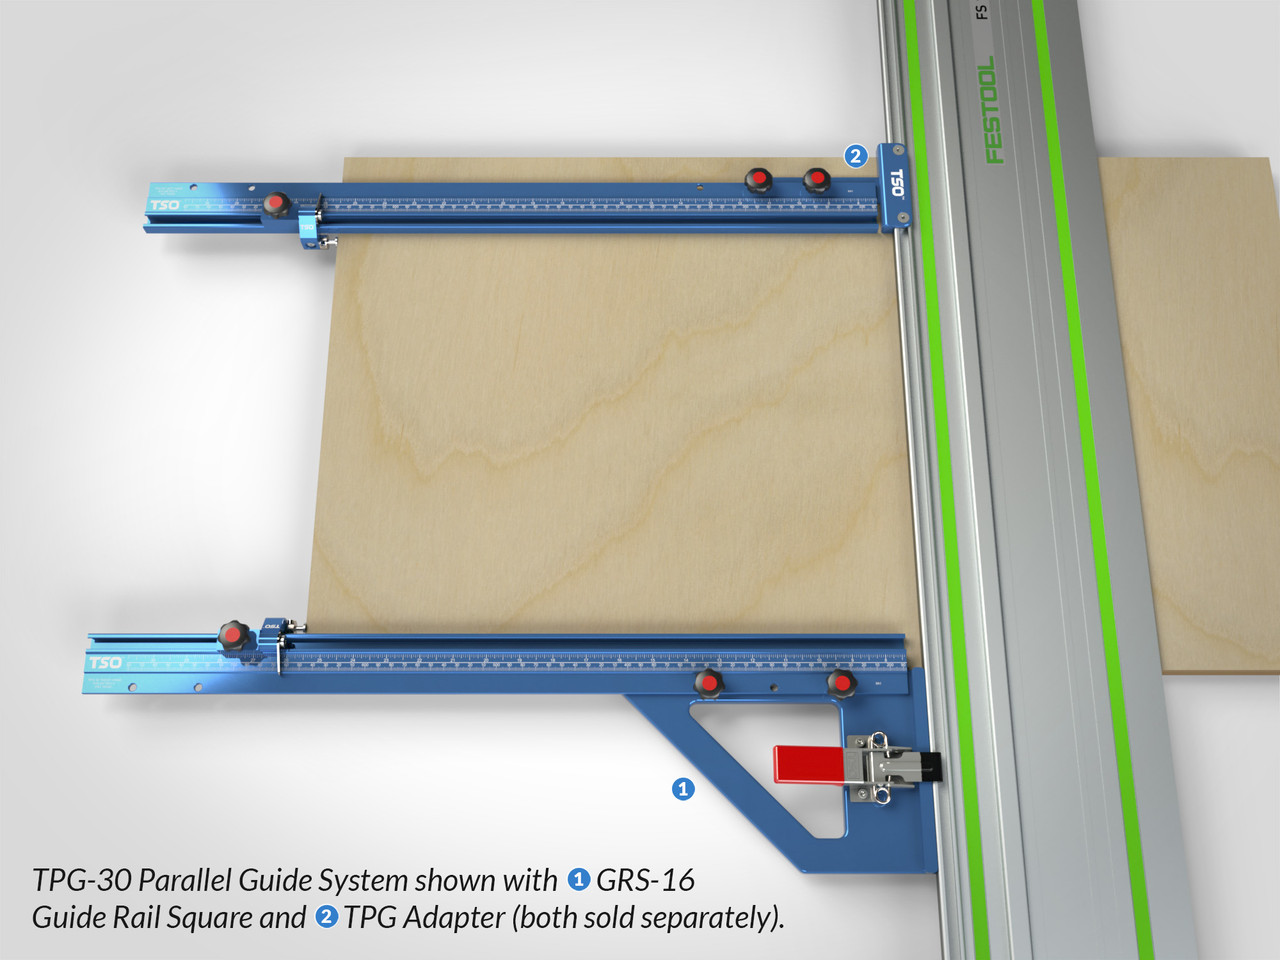 "TPG Parallel Guide System shown with 30"" T-tracks, along with a GRS-16 Guide Rail Square (near) and TPG Adapter (far) for connection to guide rail."